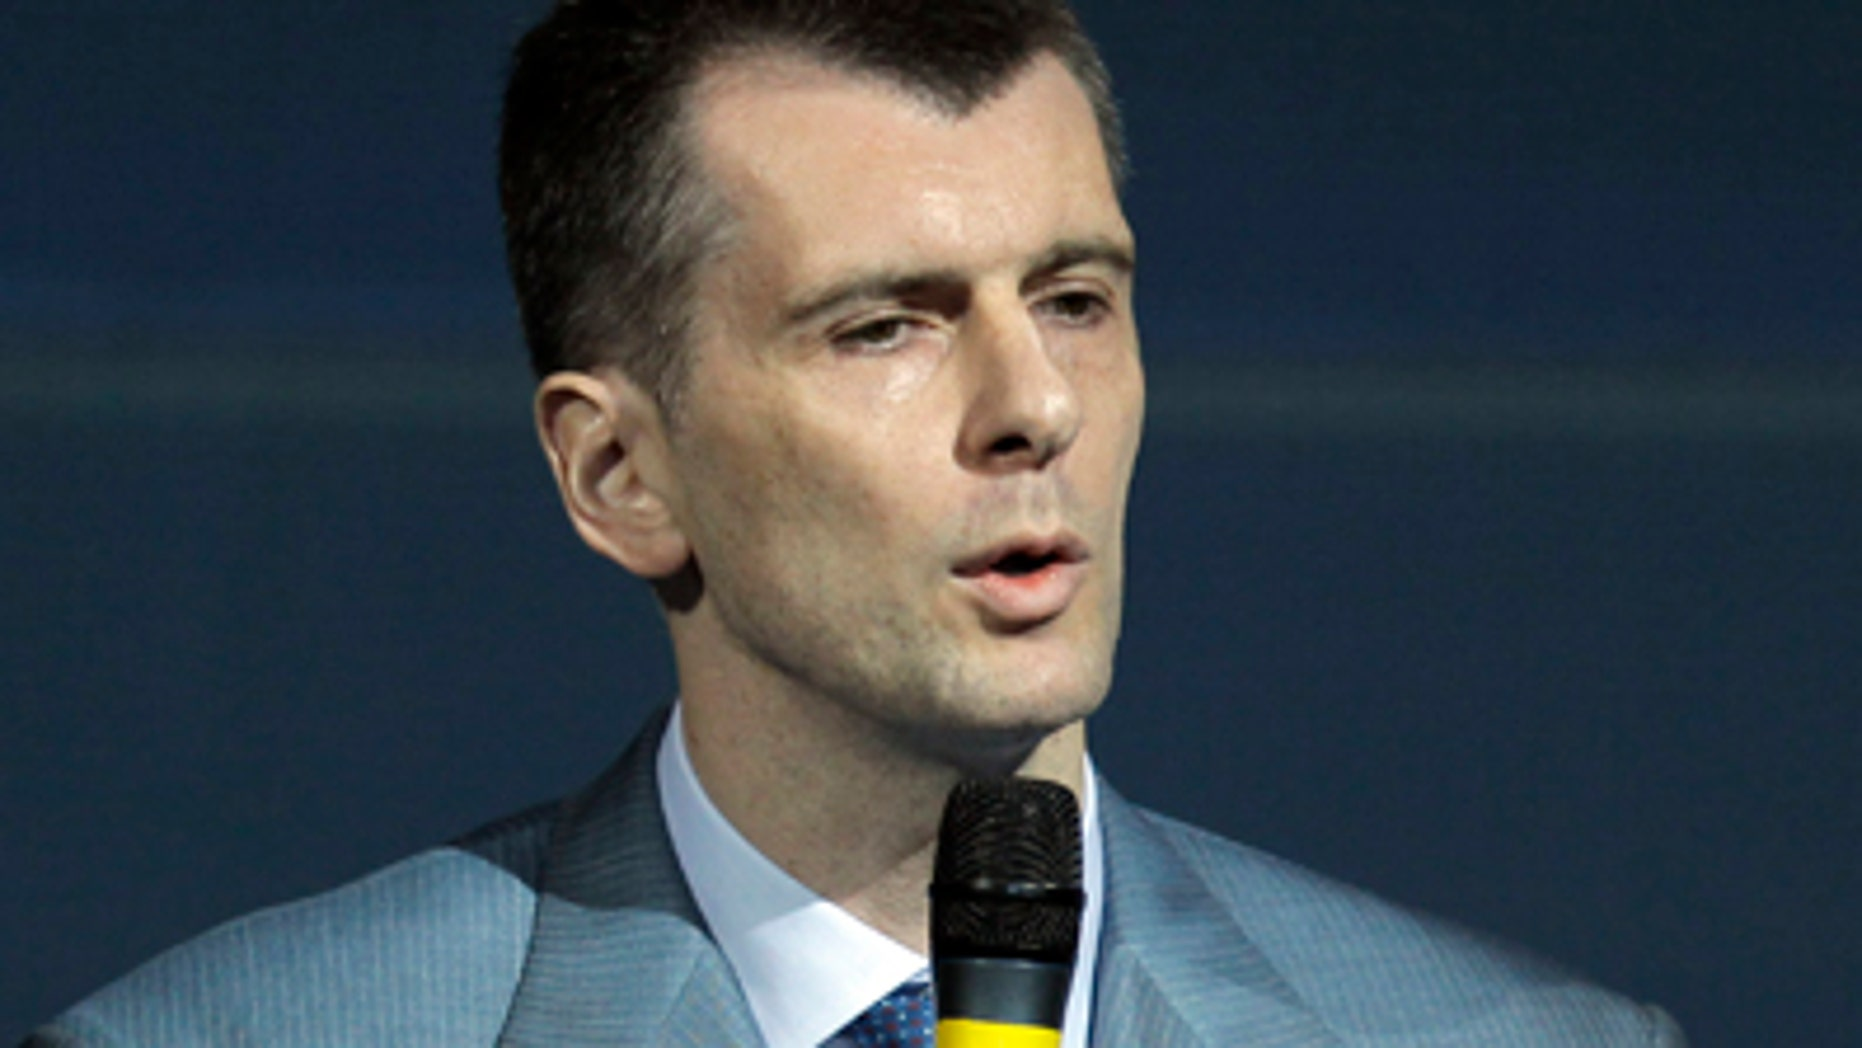 June 25: Russian tycoon Mikhail Prokhorov speaks at a meeting of the Right Cause party in Moscow. Russian tycoon and New Jersey Nets basketball team owner Mikhail Prokhorov was confirmed Saturday as the new head of a Kremlin-friendly political party. The 46-year-old billionaire was all but unanimously elected head of the Right Cause party by its members on Saturday.